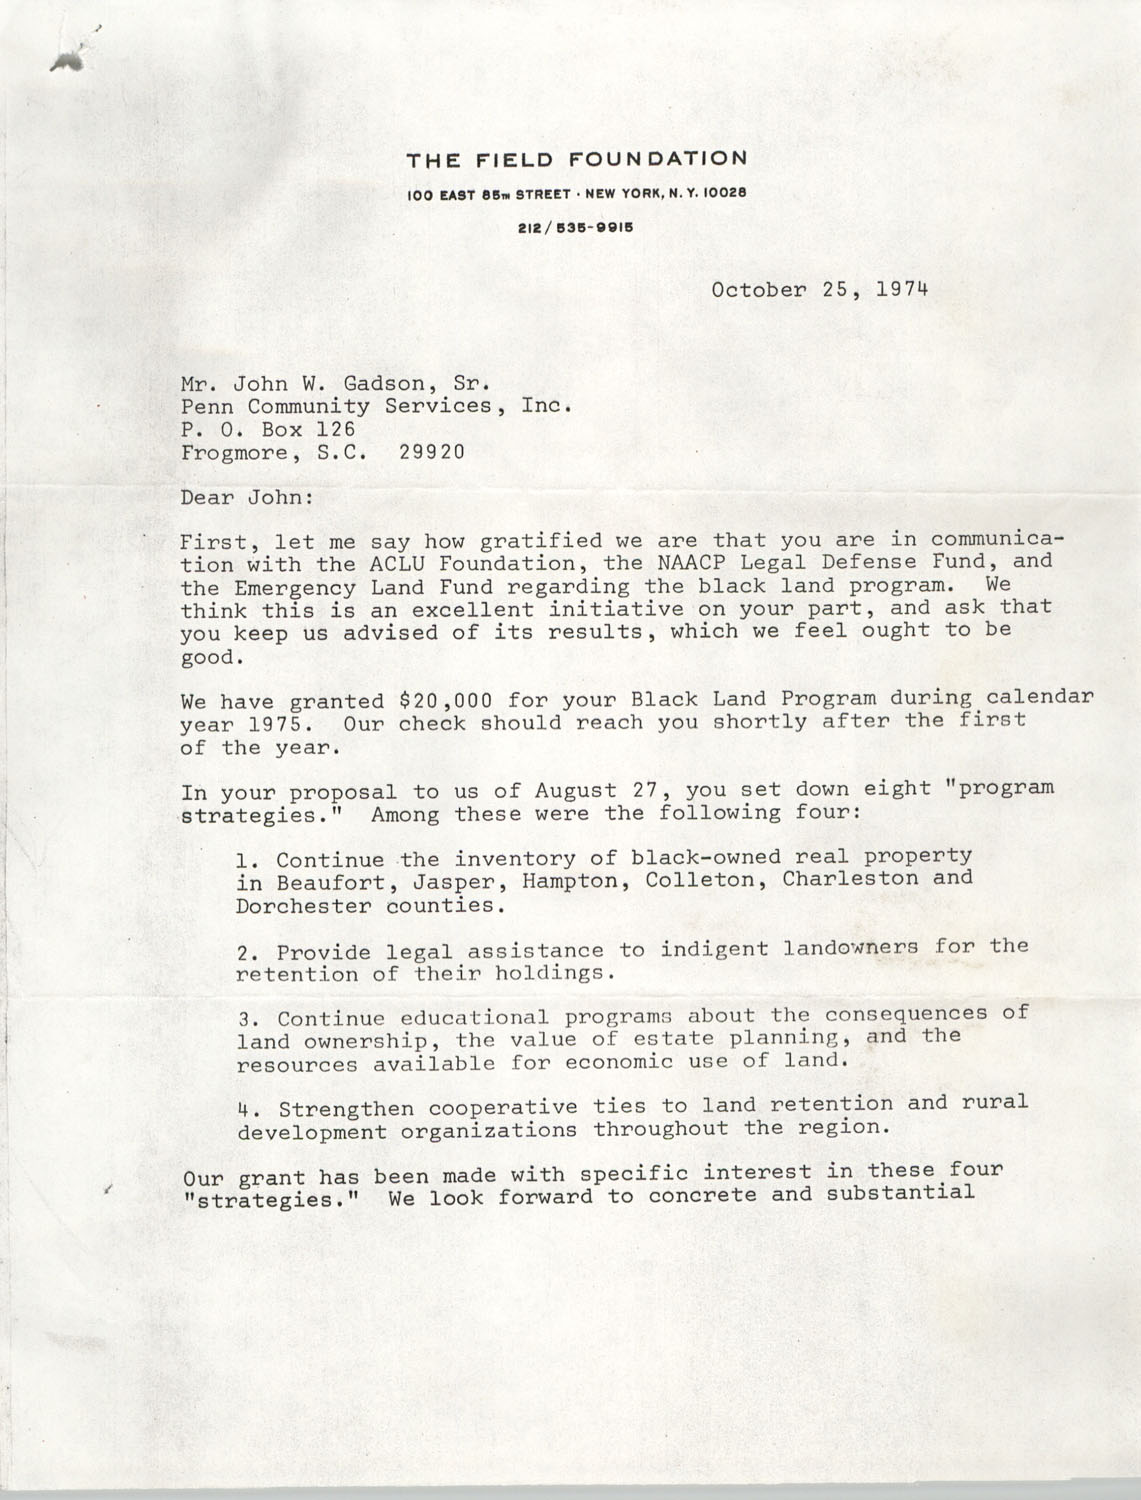 Letter from Leslie W. Dunbar to John W. Gadson, Sr., October 25, 1974